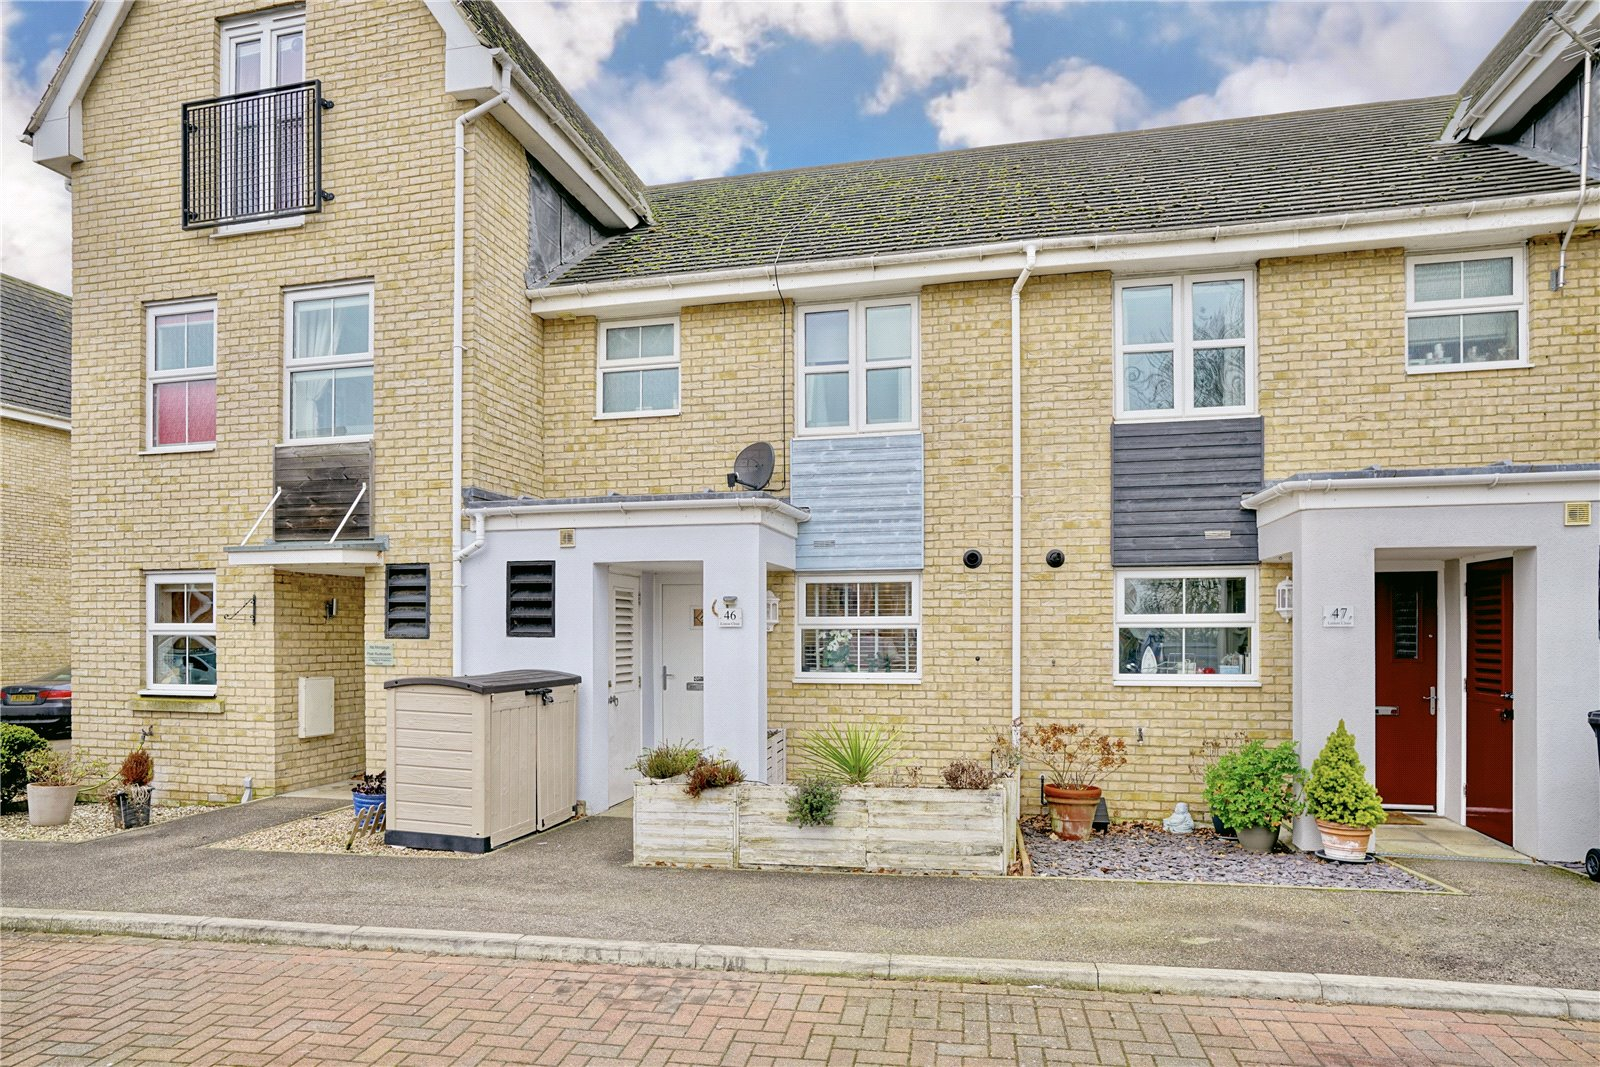 3 bed house for sale in Linton Close, Eaton Socon, PE19